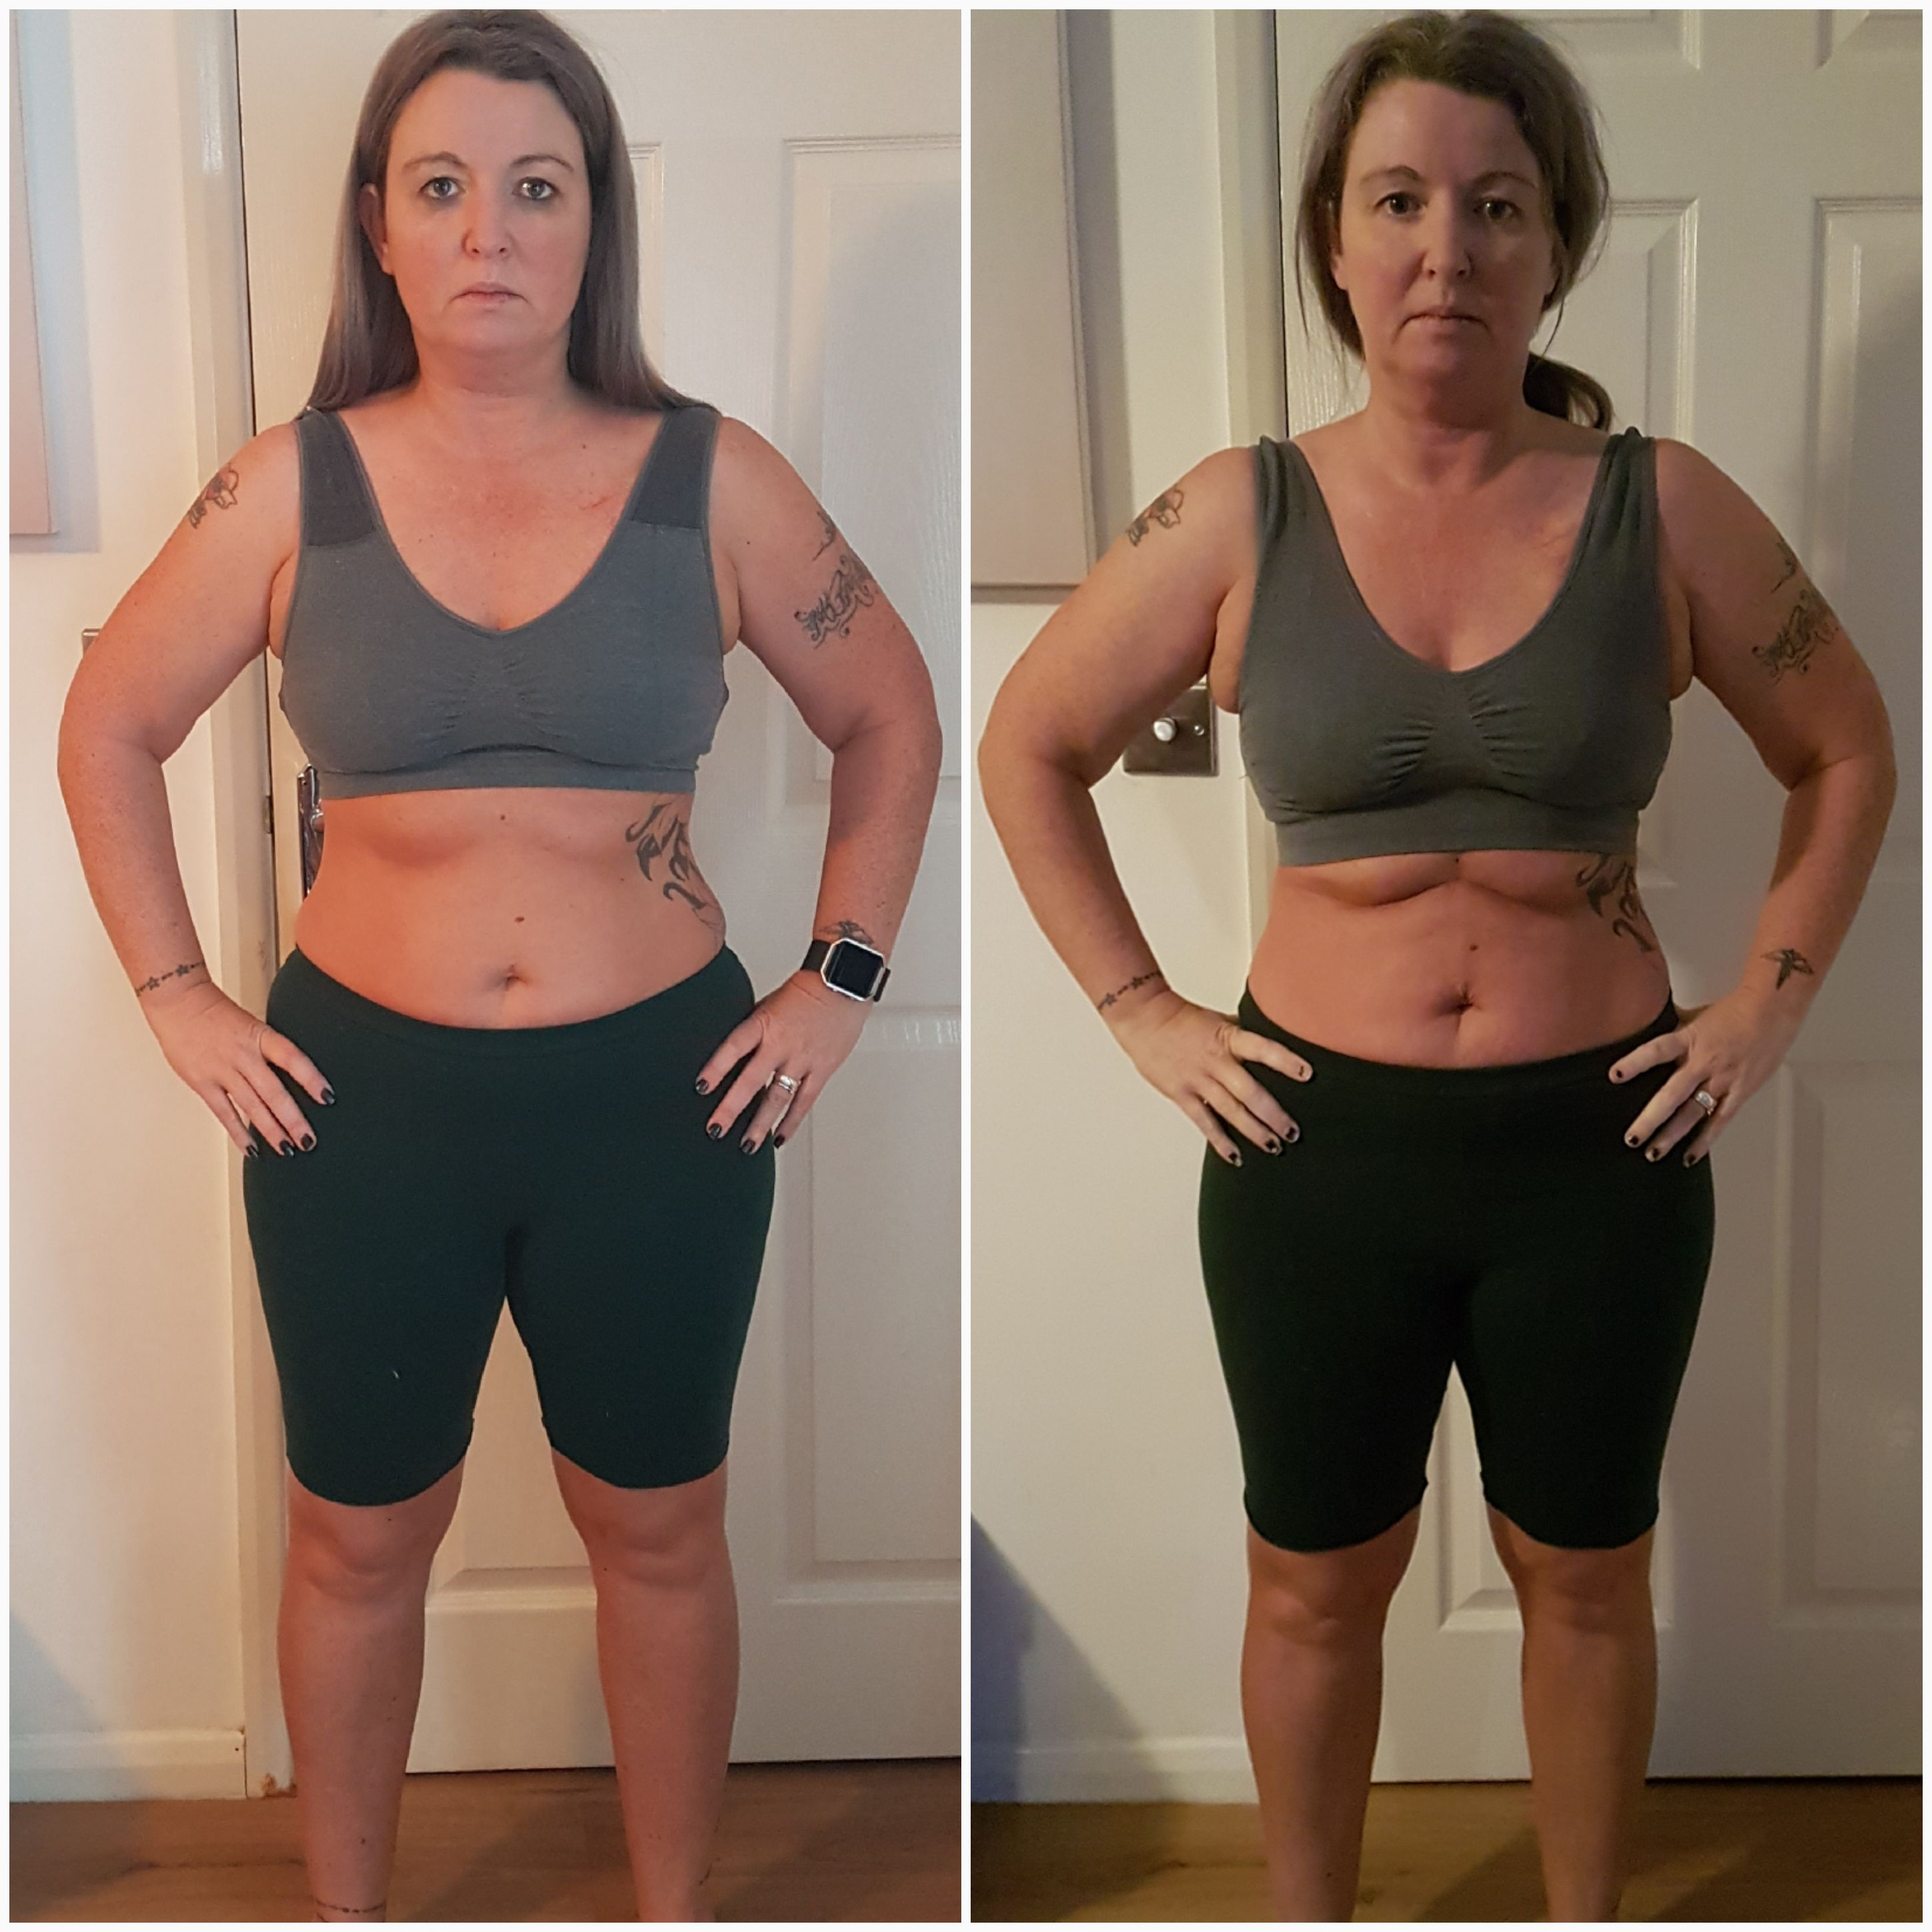 80 Day Obsession 80 day obsession – wendy smith